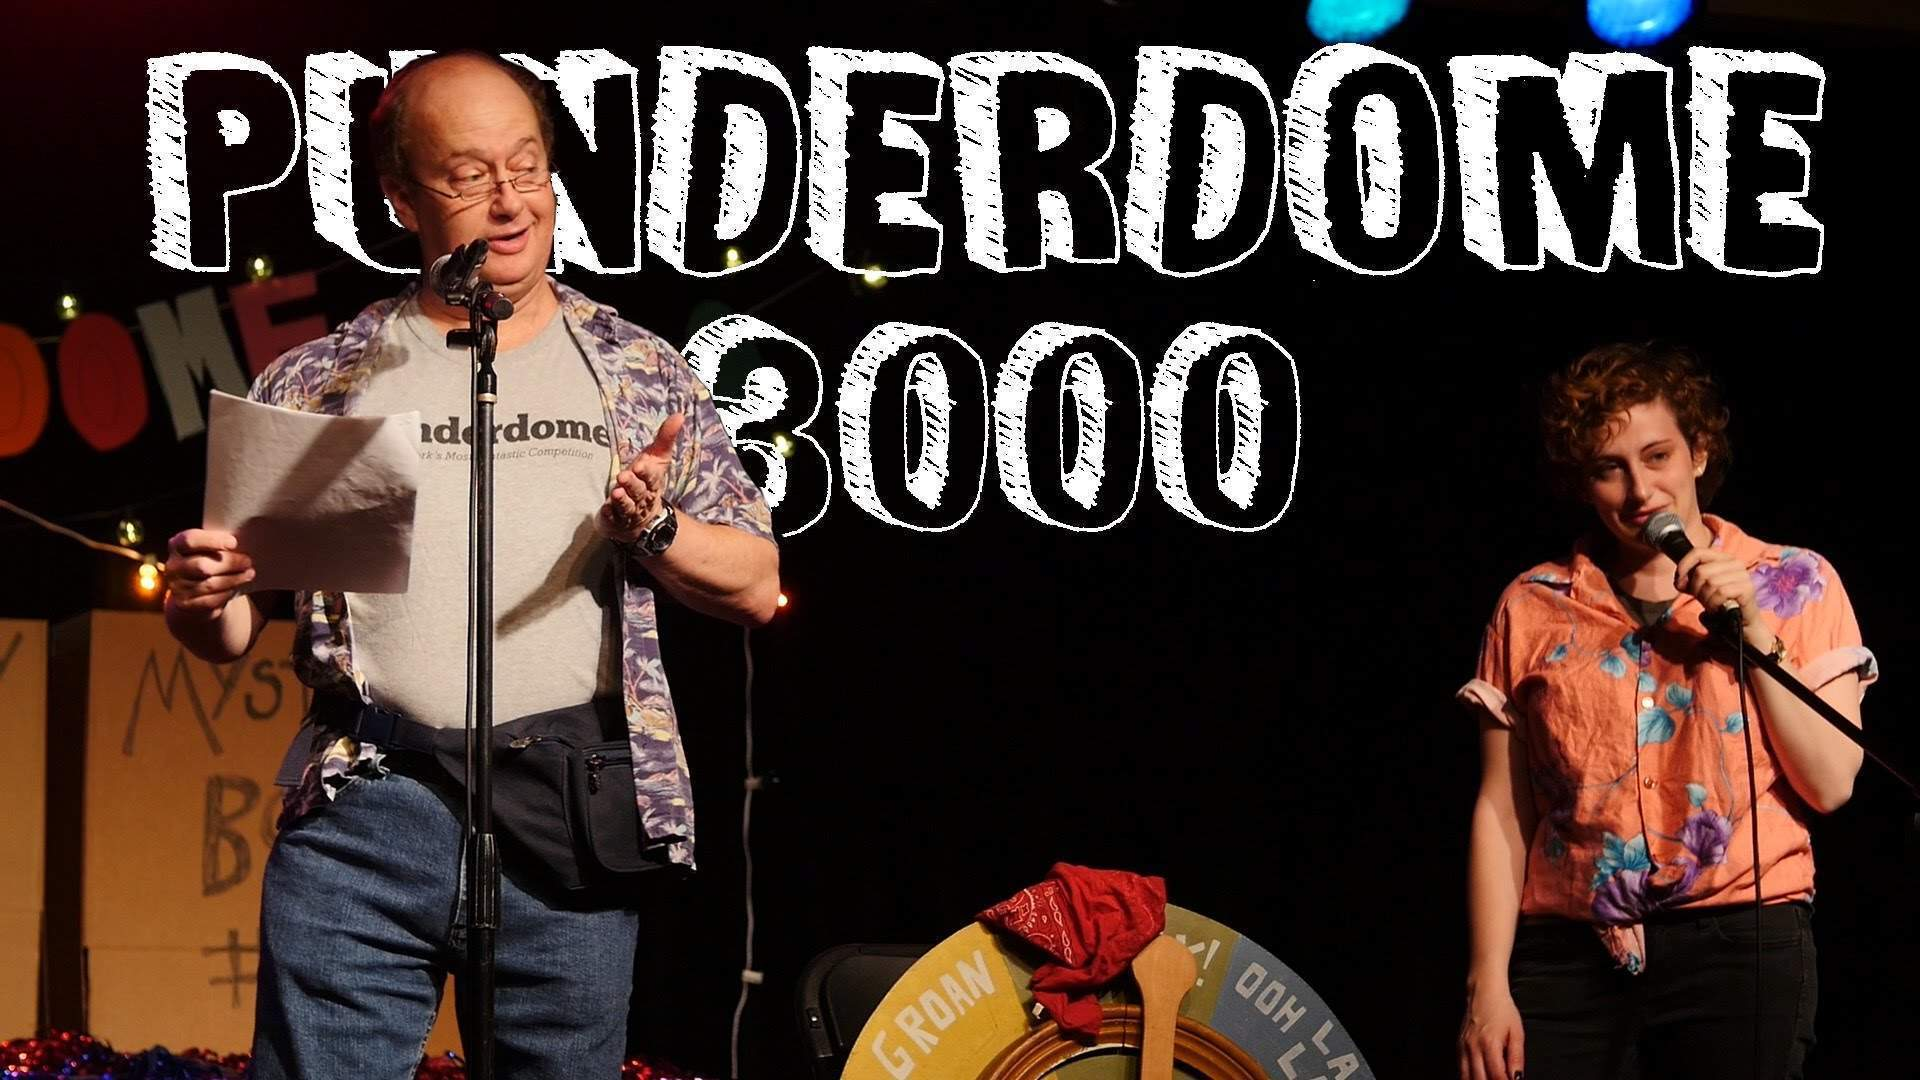 A night out at the Punderdome 3000